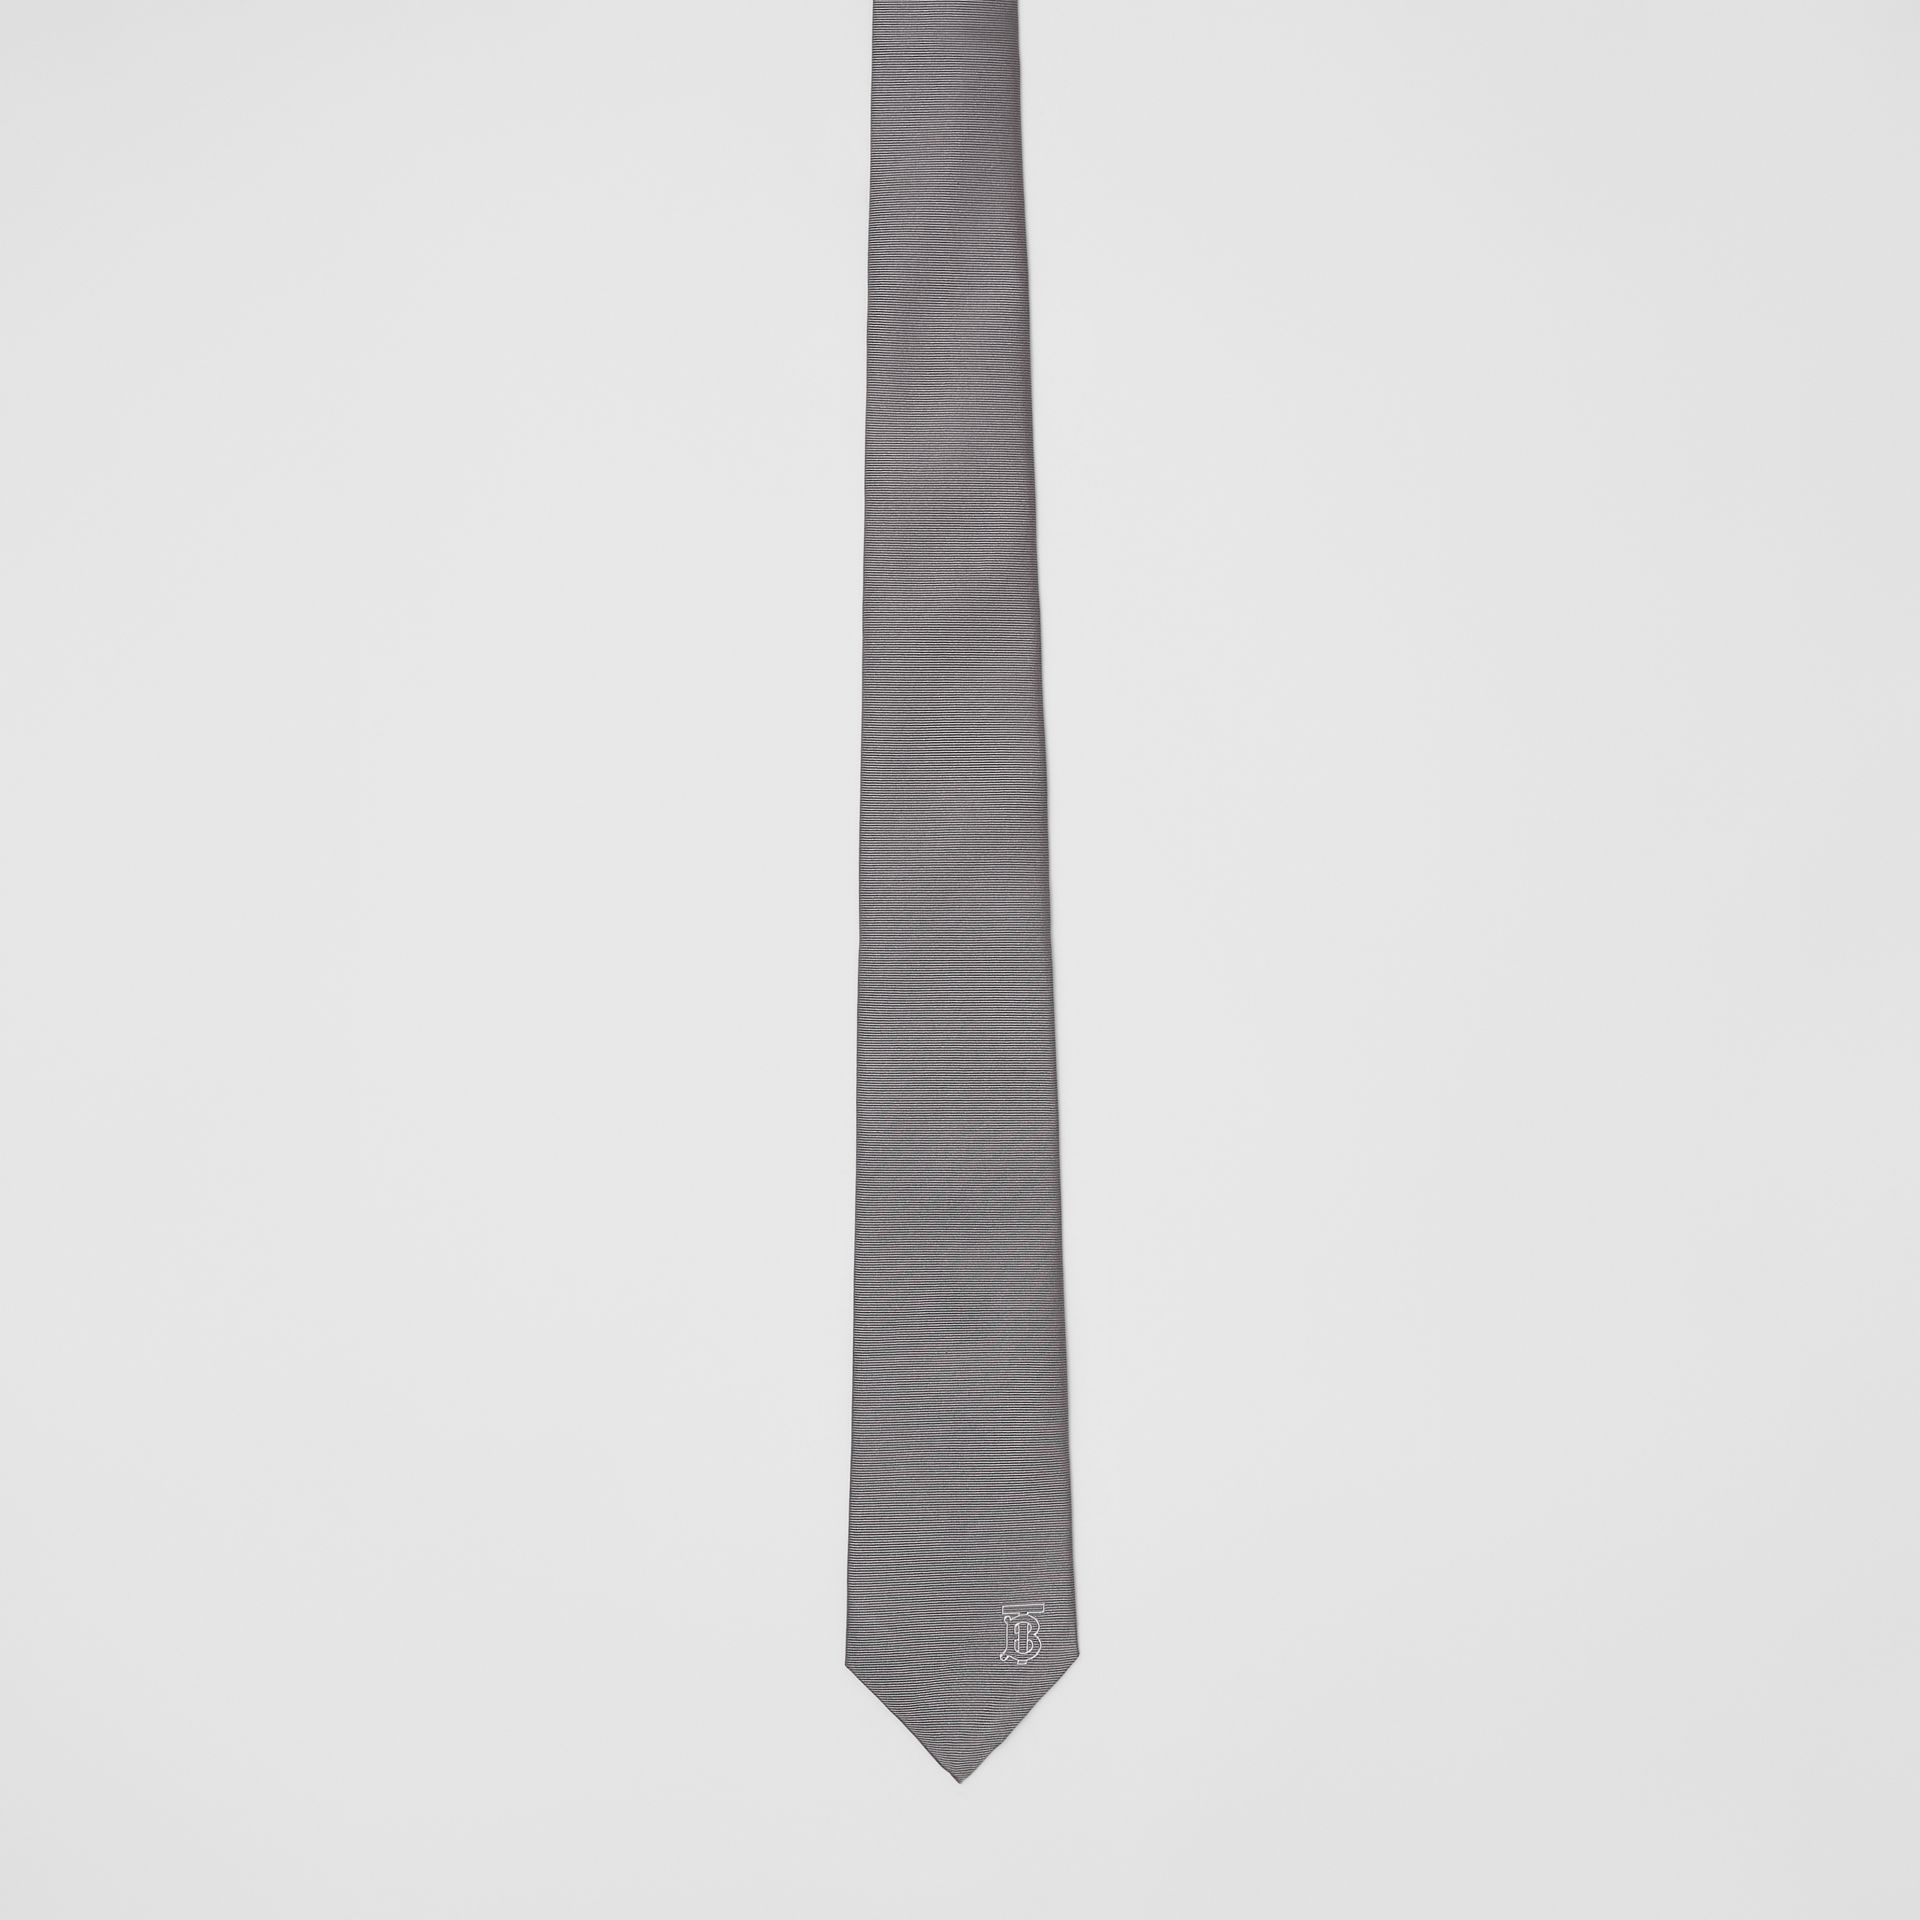 Classic Cut Monogram Motif Silk Tie in Mid Grey - Men | Burberry Canada - gallery image 2